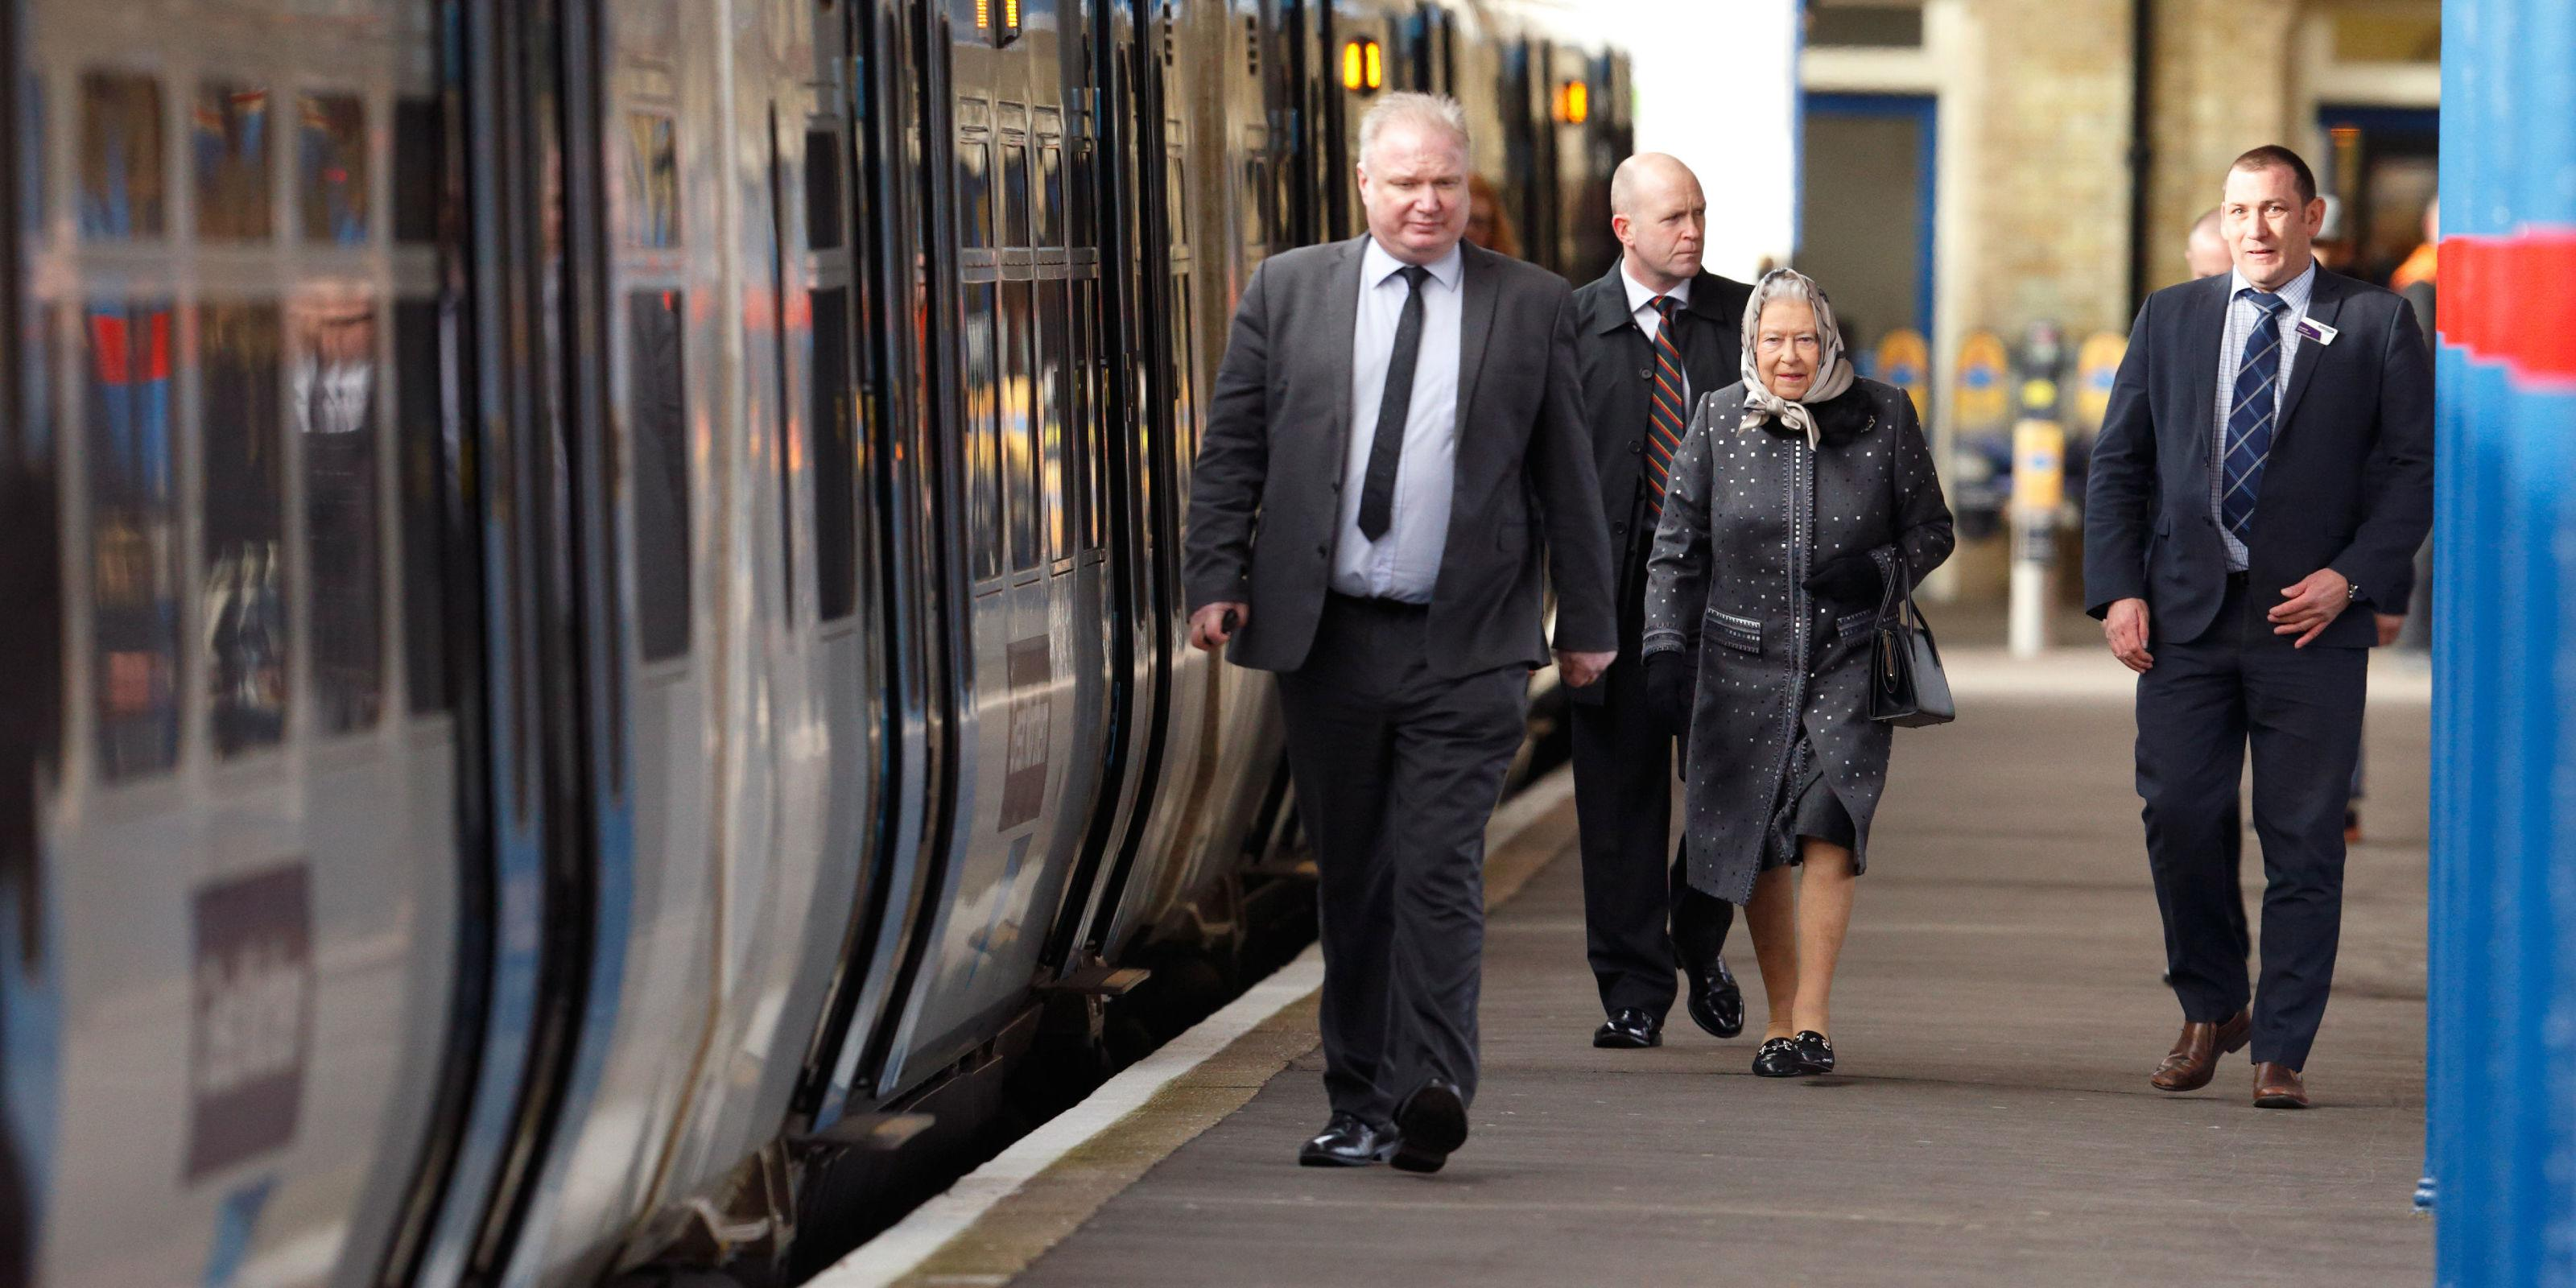 The Queen Took a Commuter Train